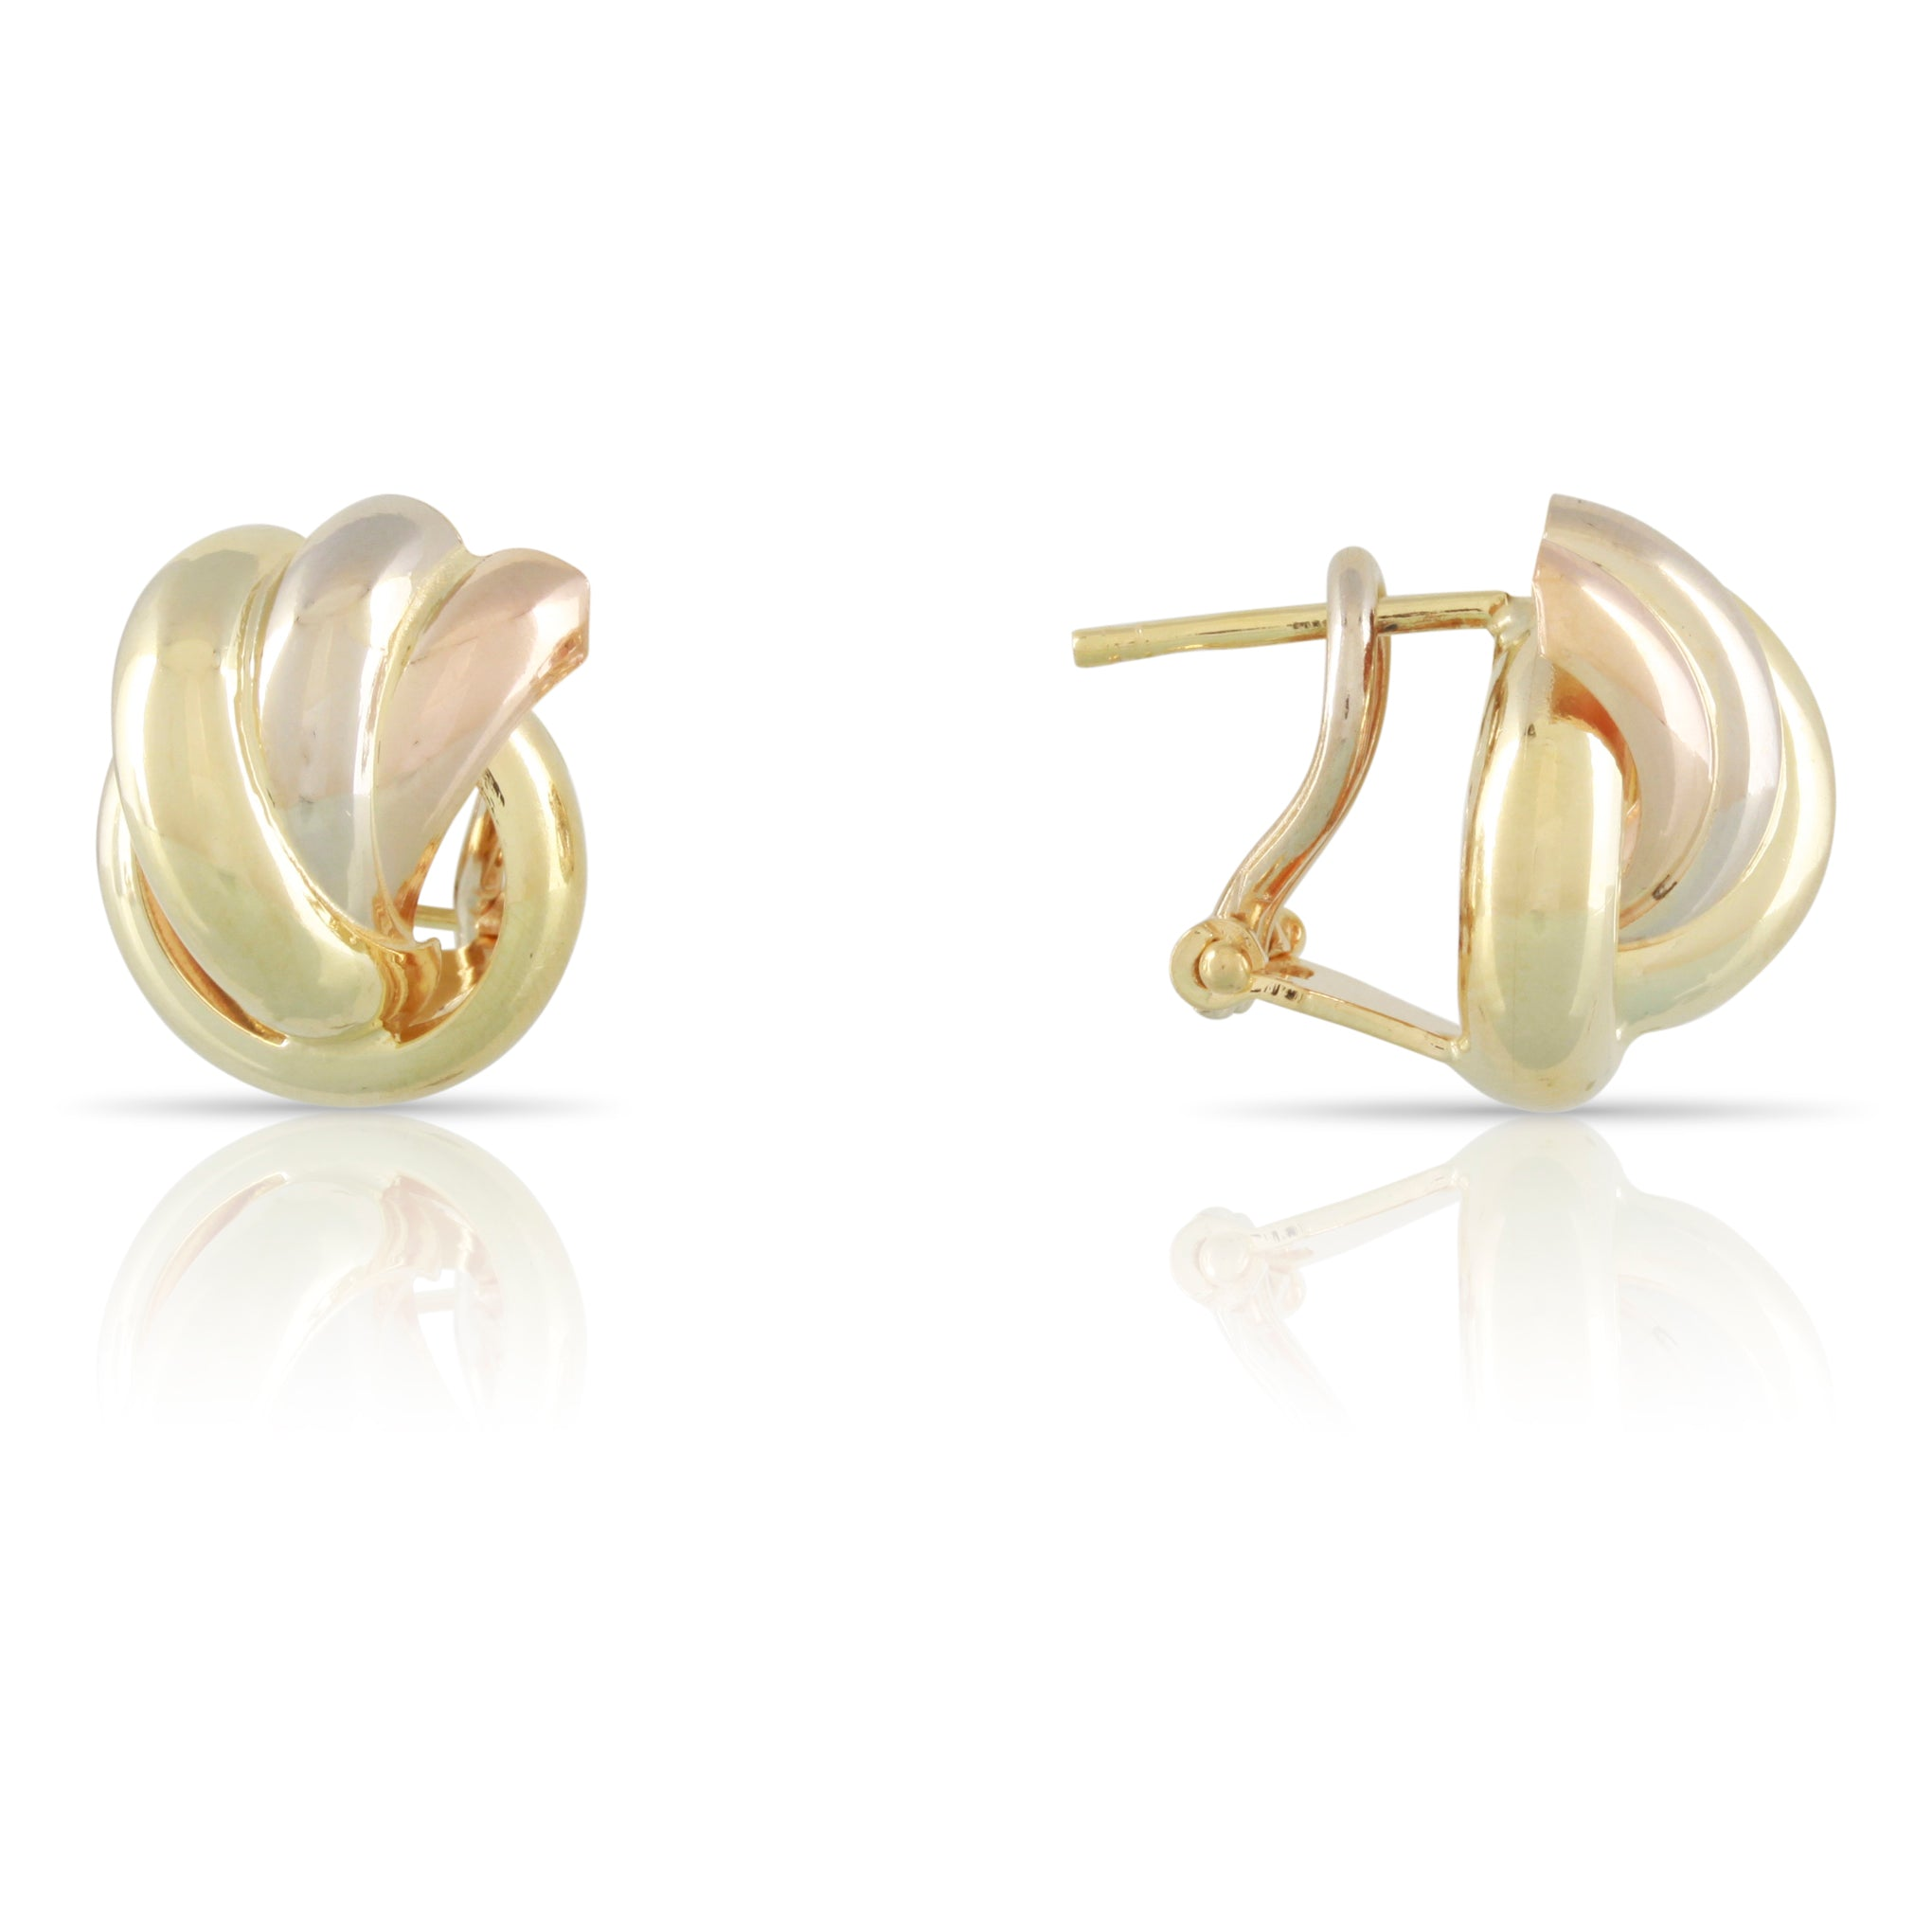 Tri-Tone Gold Earrings | The Felicity